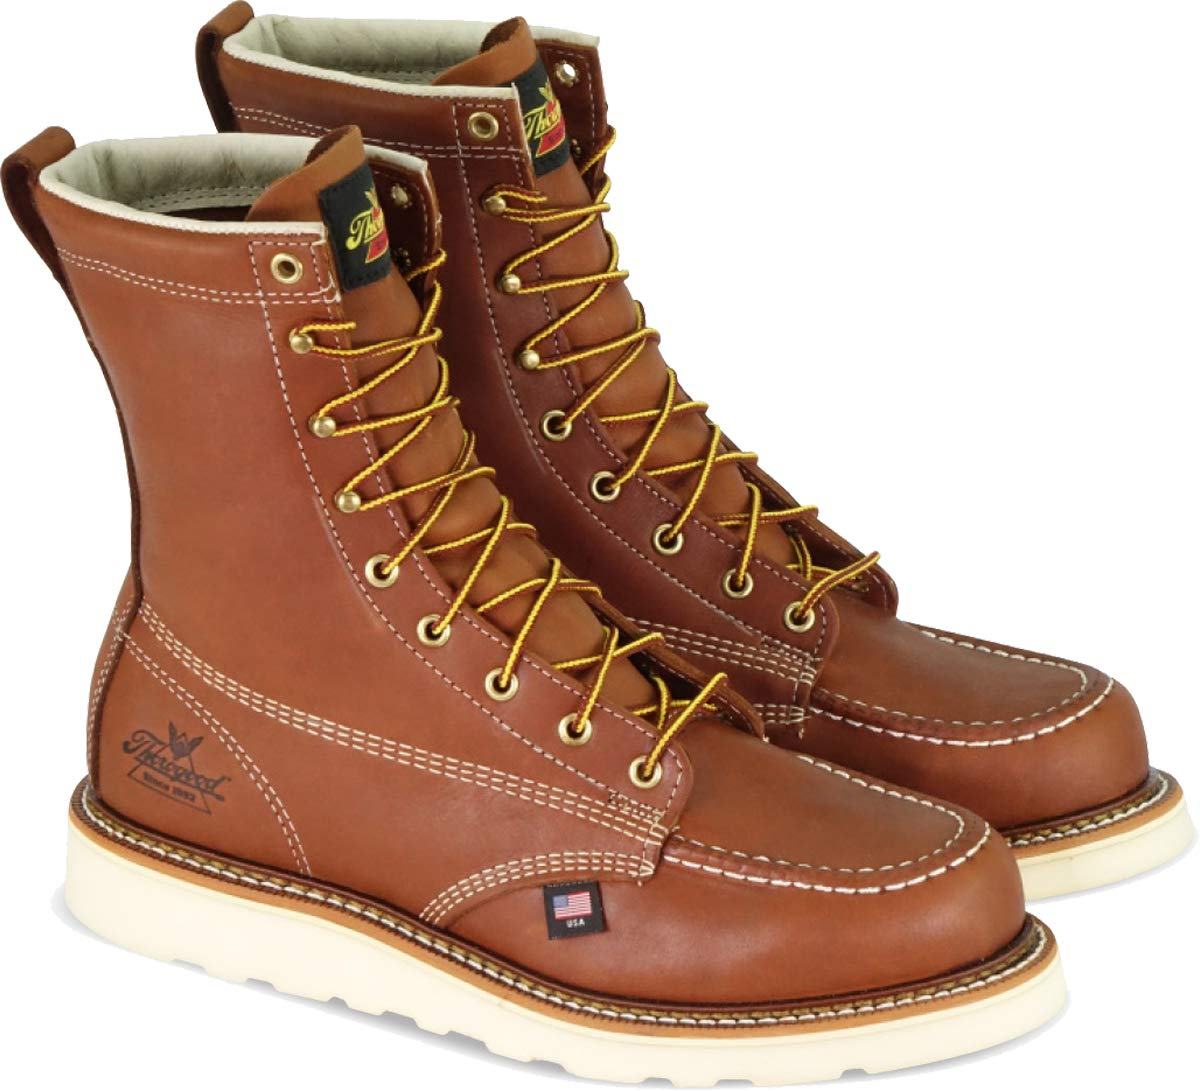 Thorogood 804-4208 Men's American Heritage 8'' Moc Toe, MAXwear Wedge Safety Toe, Tobacco Oil-Tanned - 11 D US by Thorogood